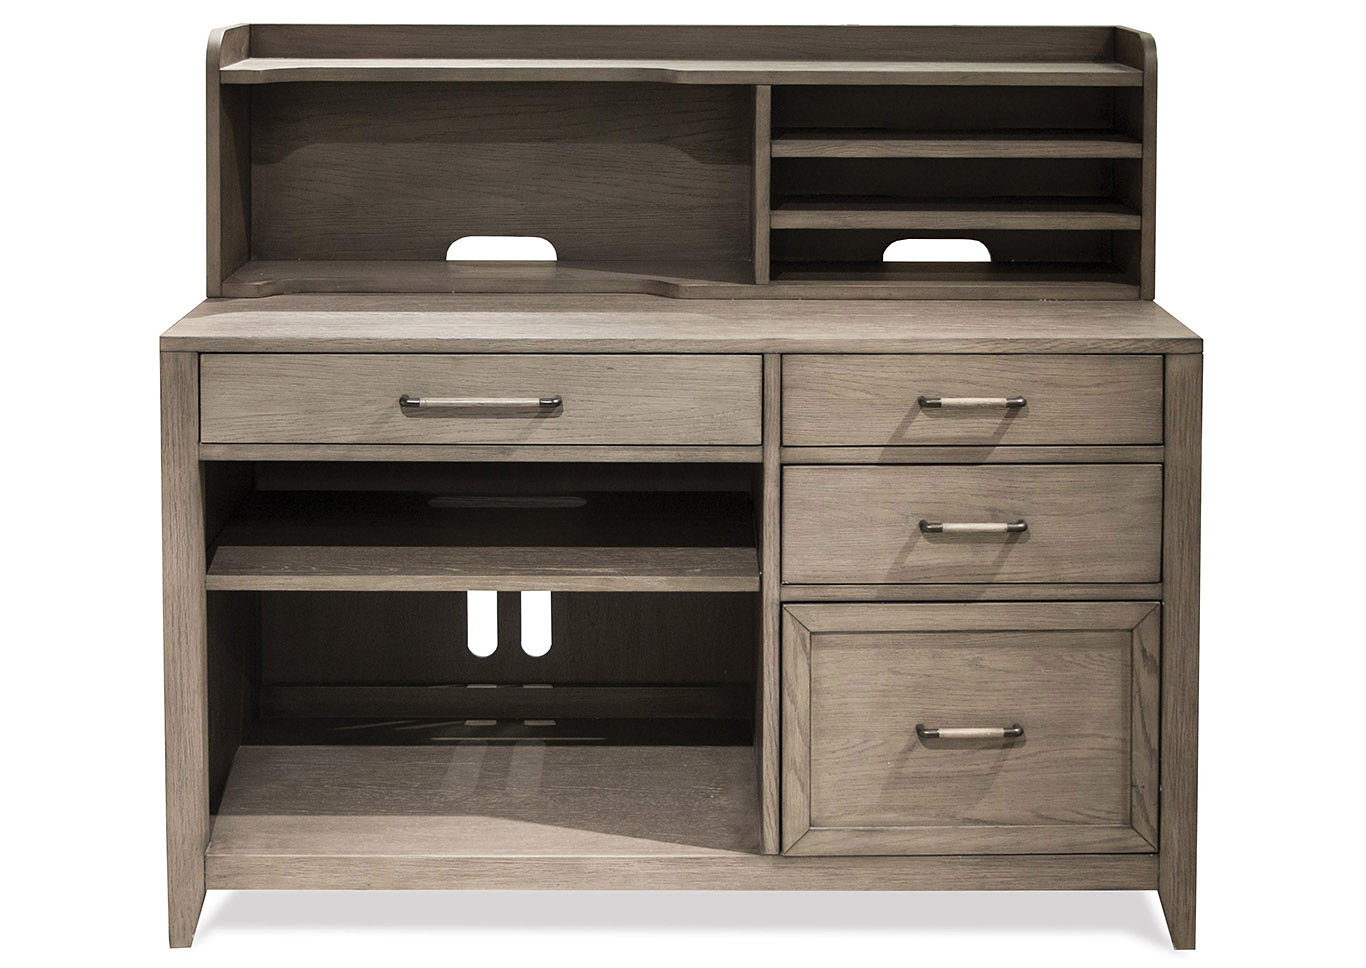 Credenza For Sale Perth : All brands furniture edison greenbrook north brunswick perth